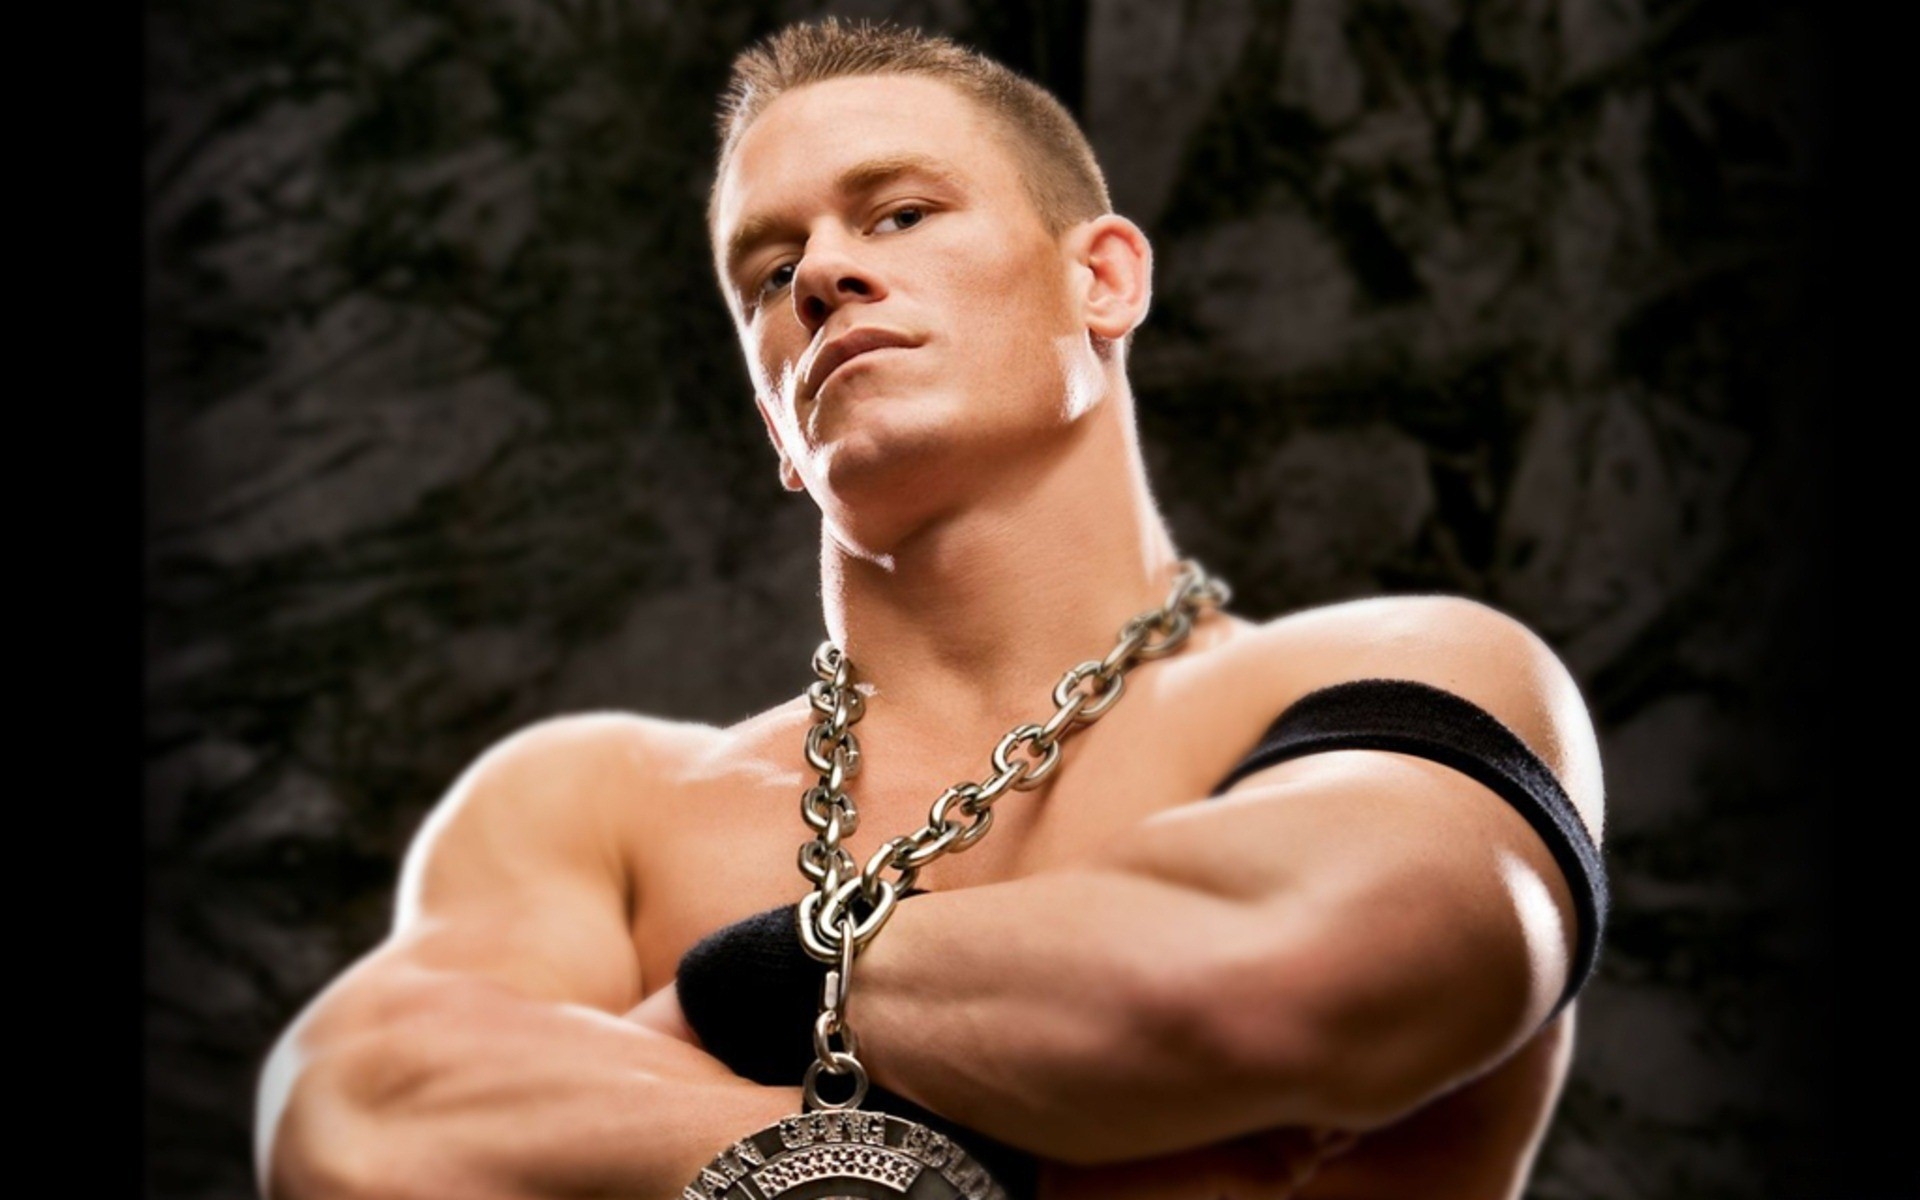 wwe superstars john cena download hd wallpaper